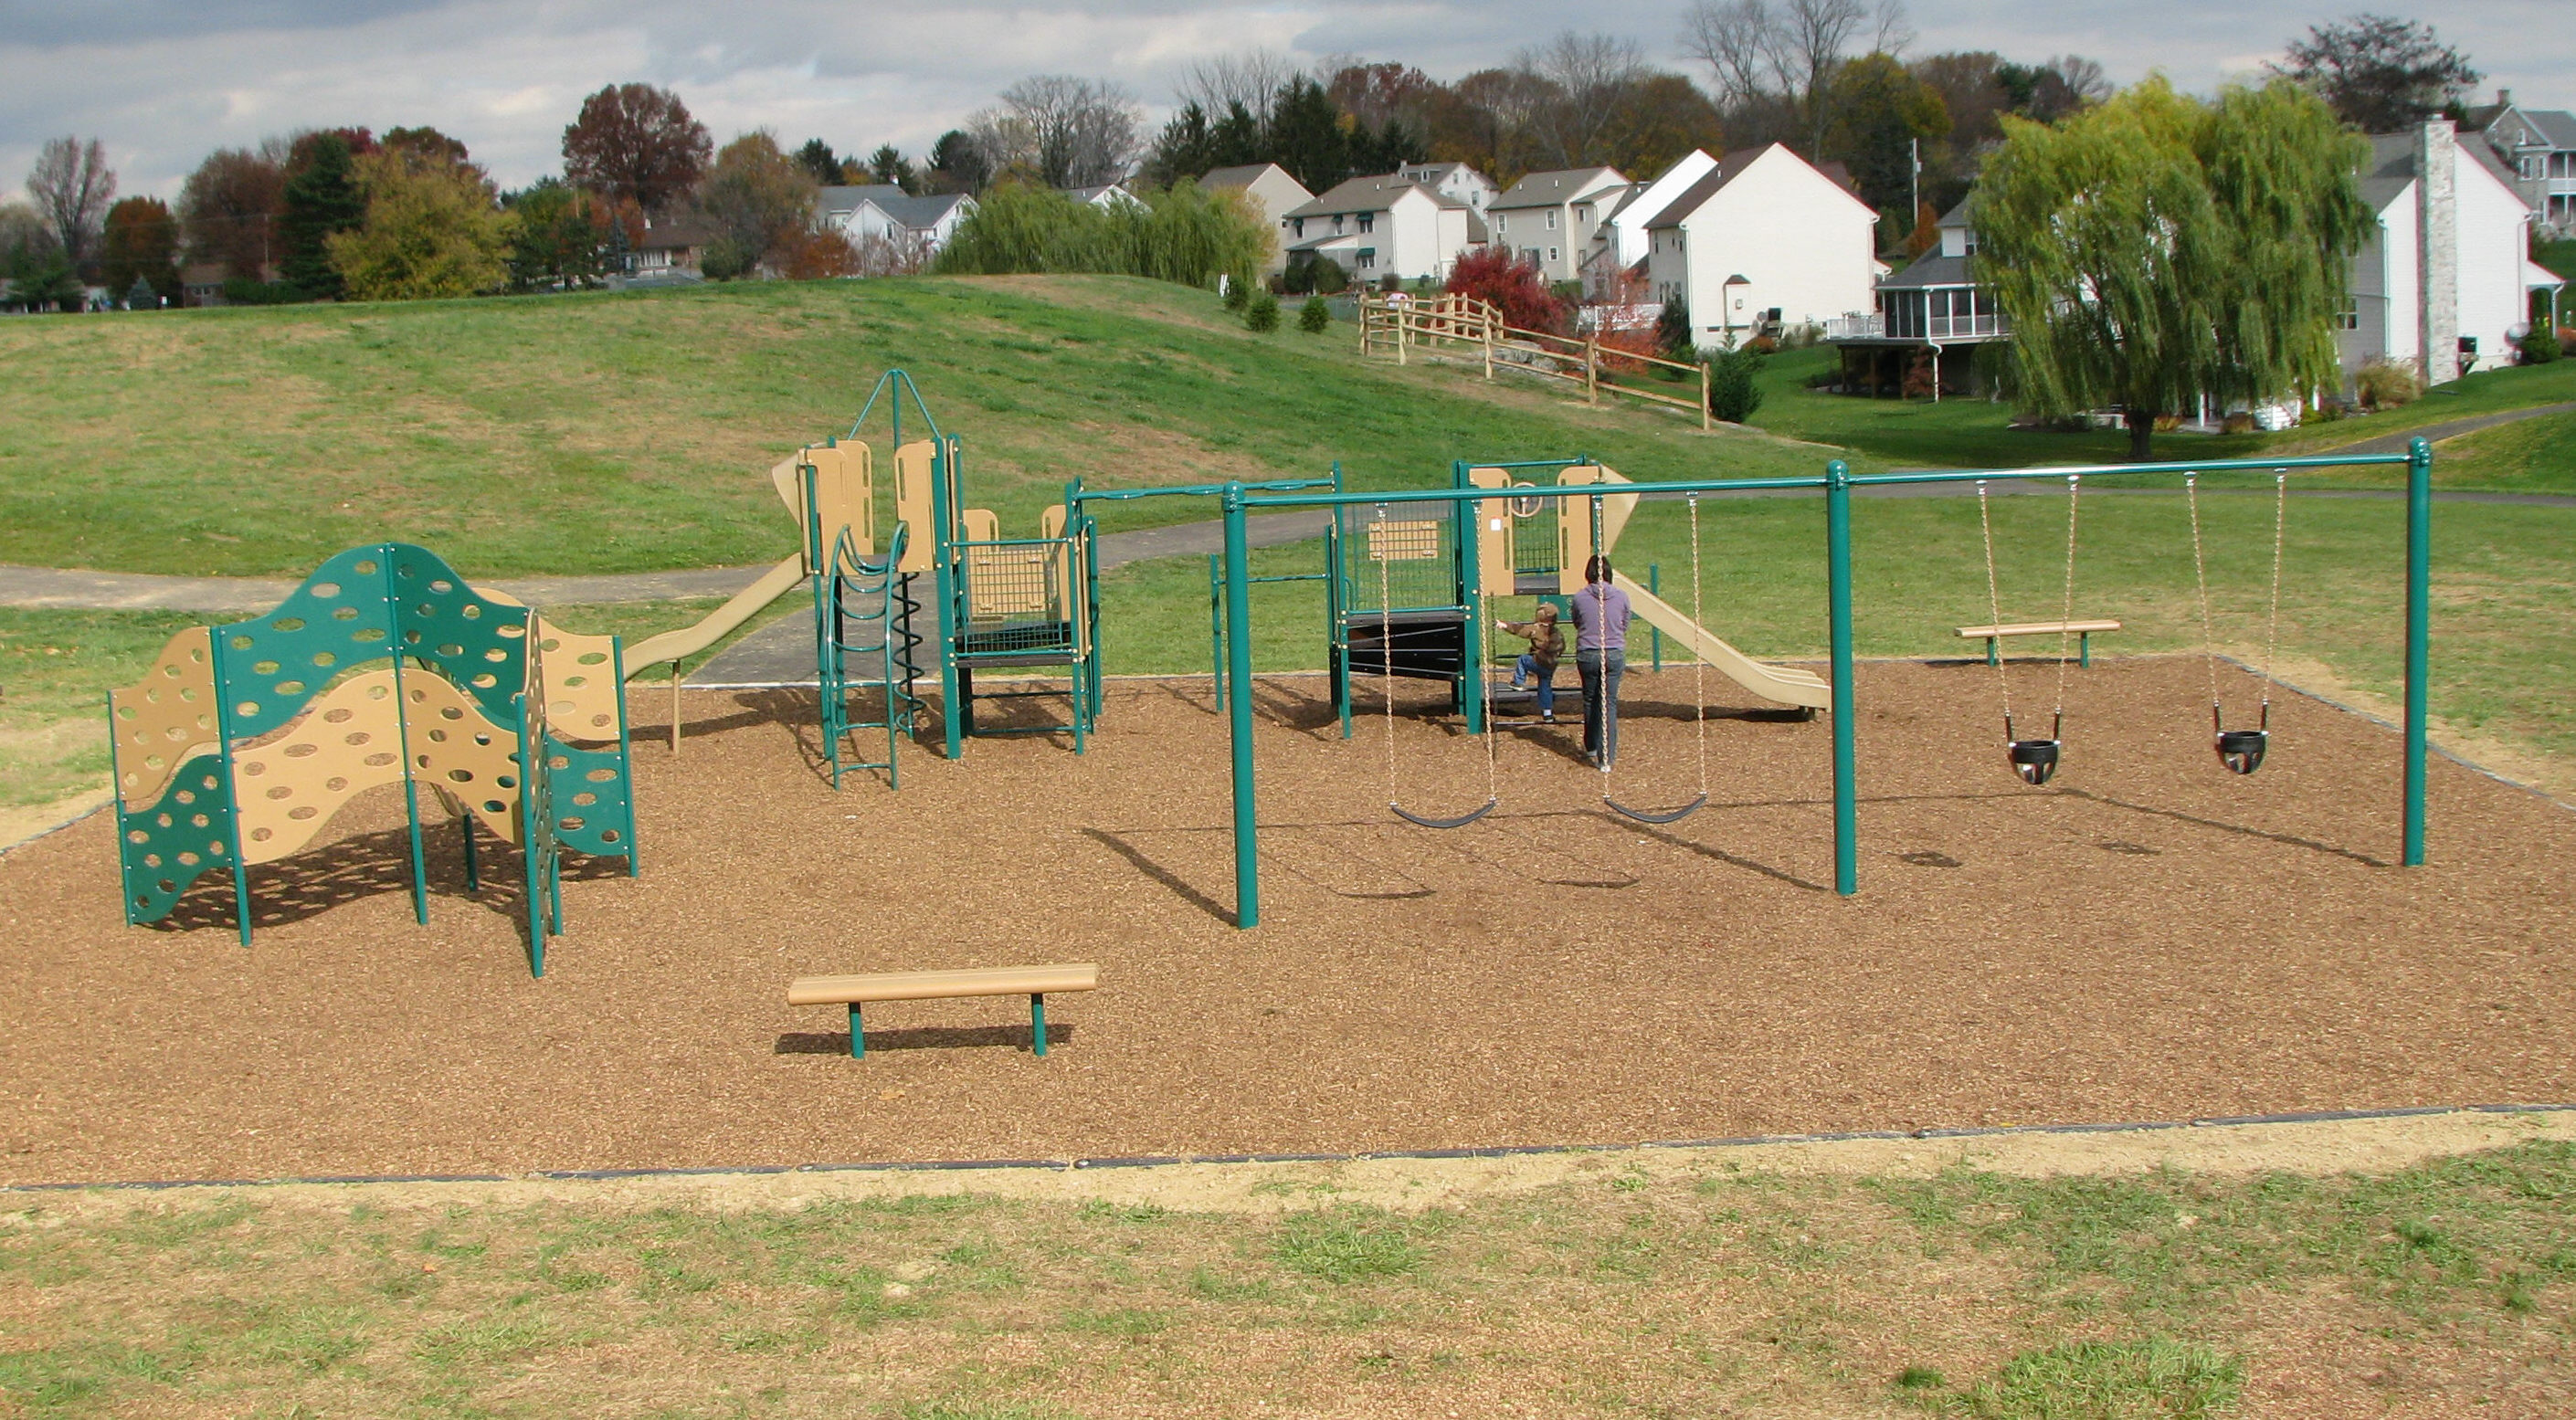 HEATHERFIELD PLAYGROUND